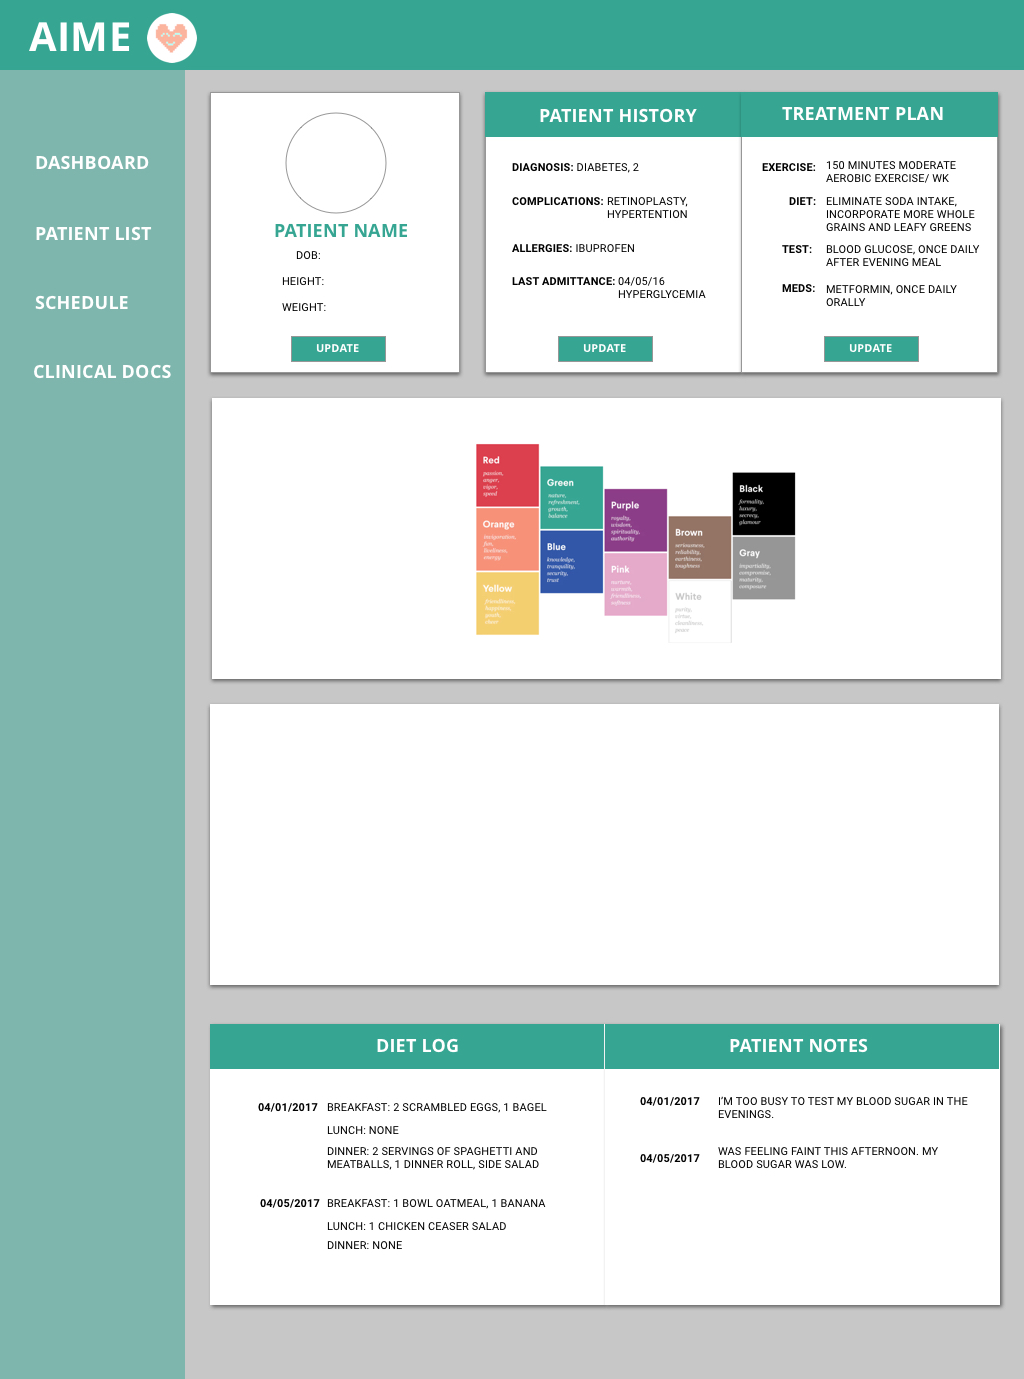 Hi-fi mockup color scheme 3. We chose to go with this color scheme and branding.